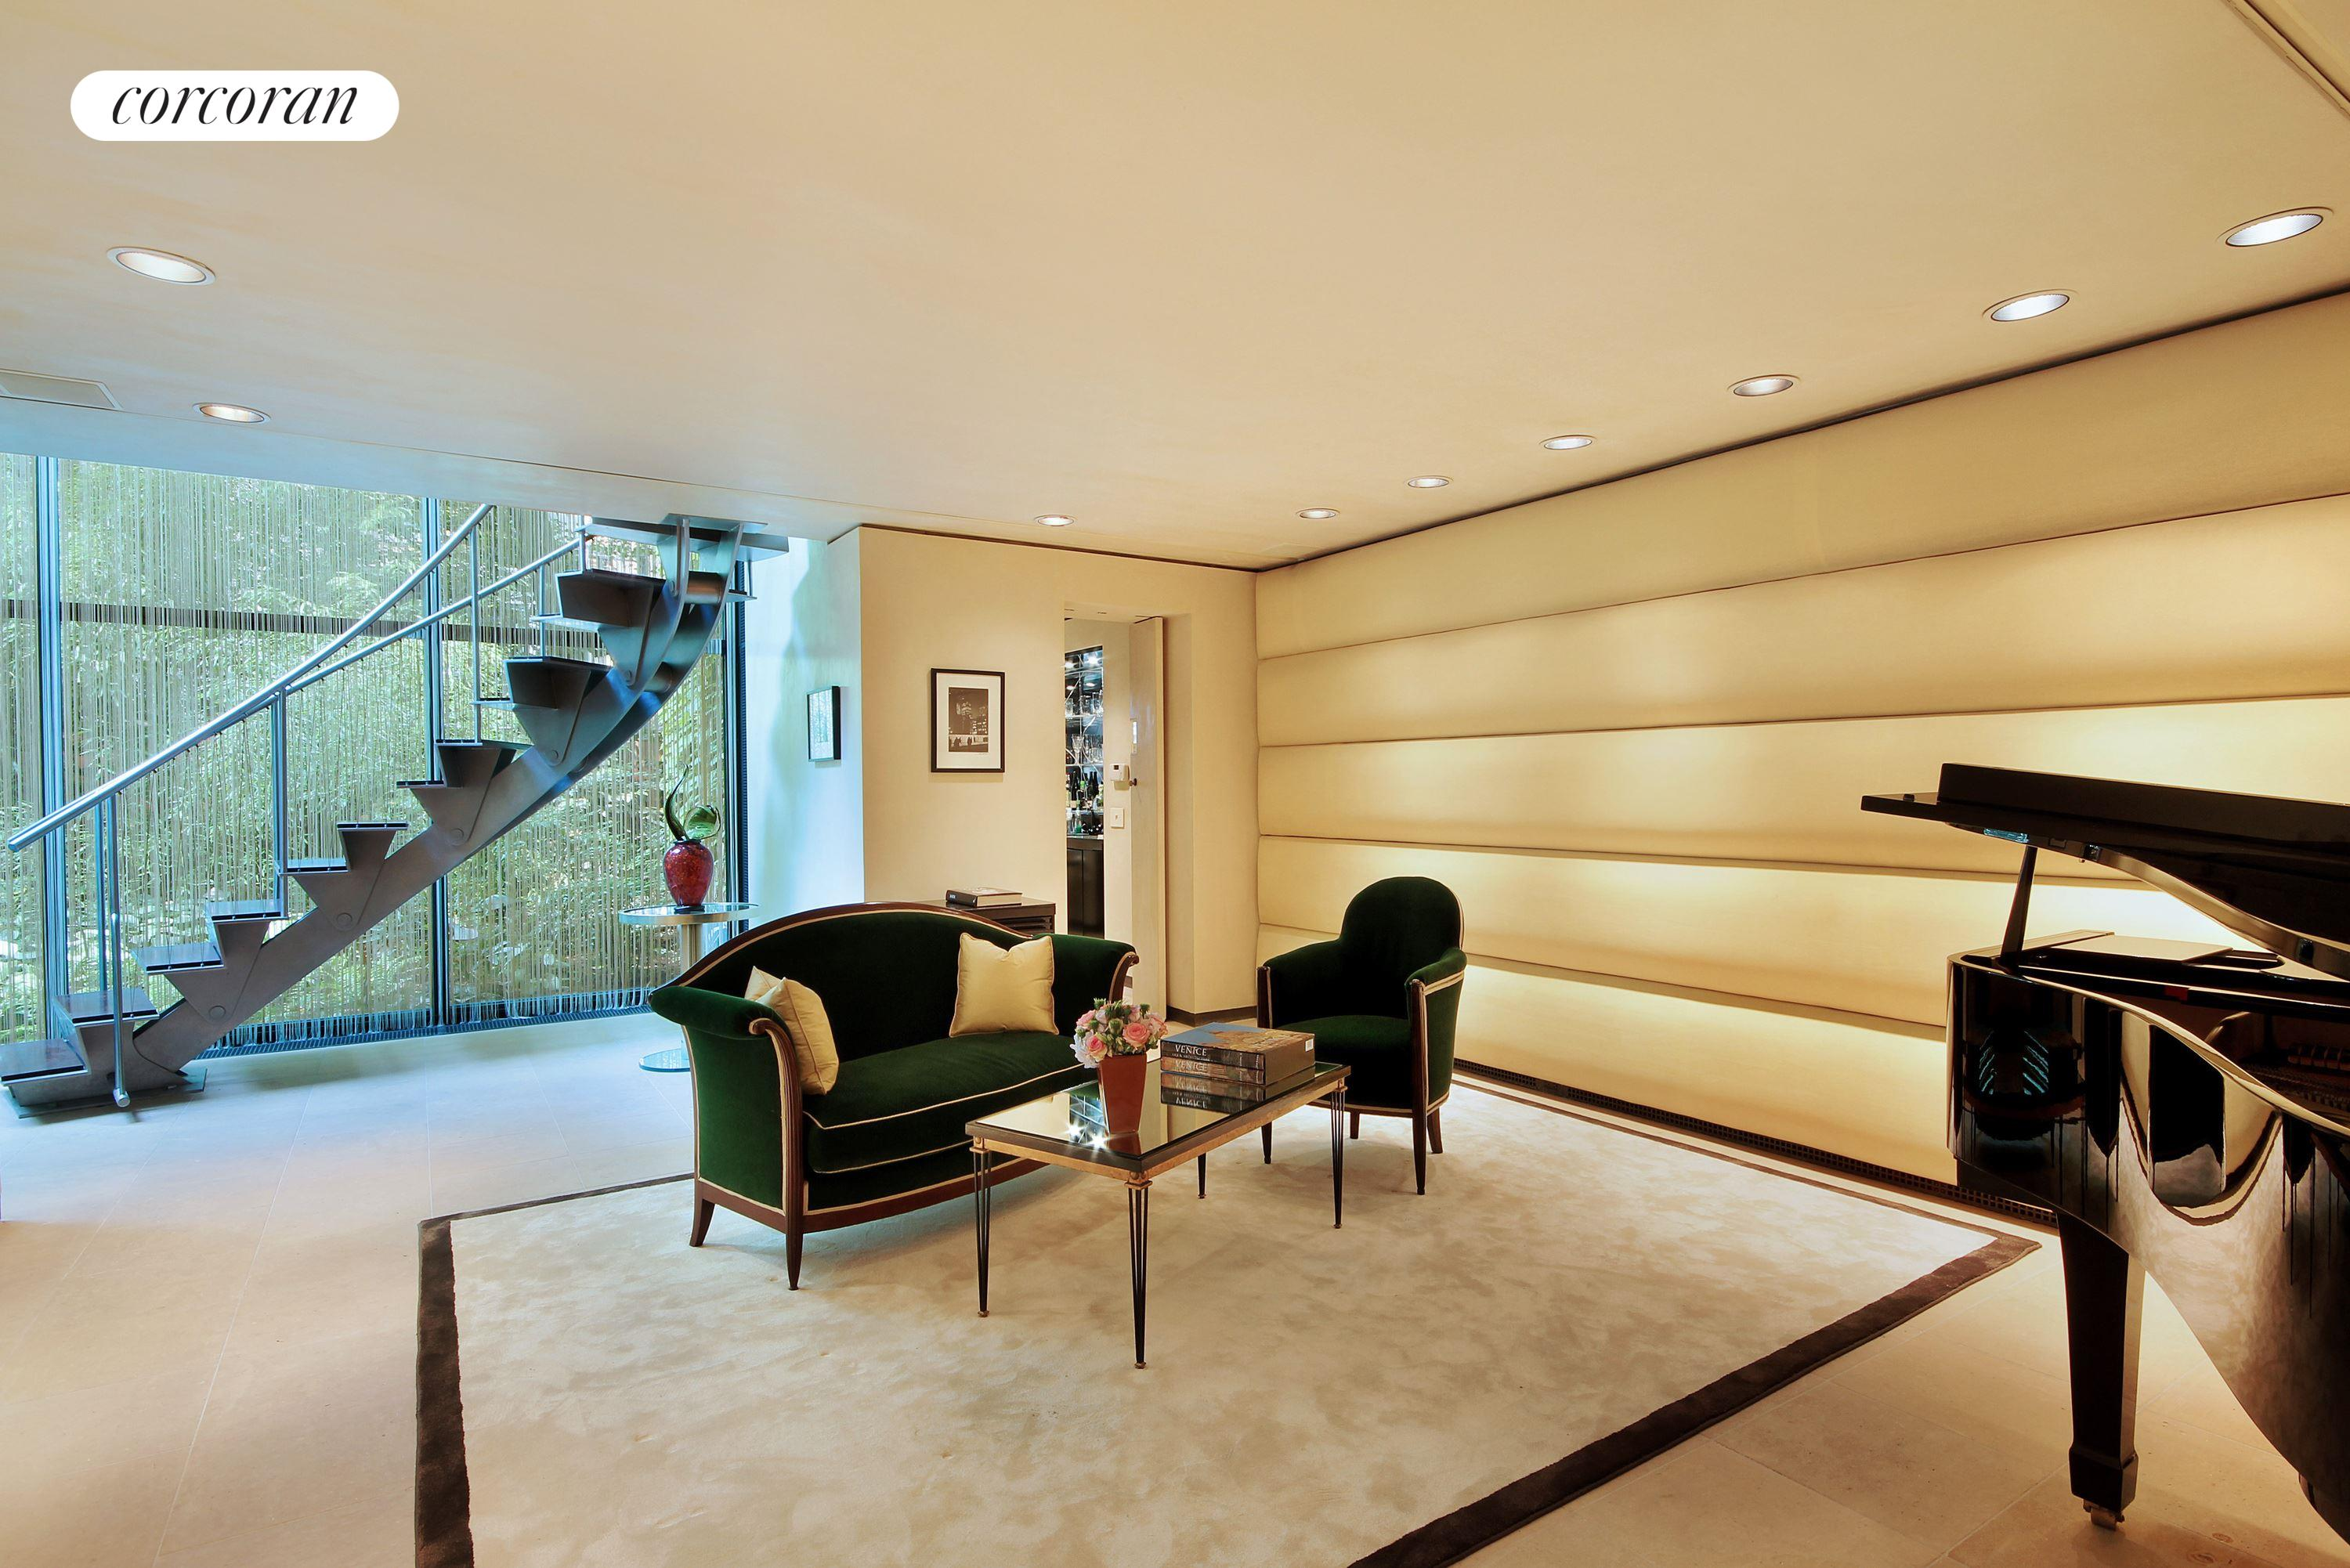 157 East 70th Street, Entry Hall